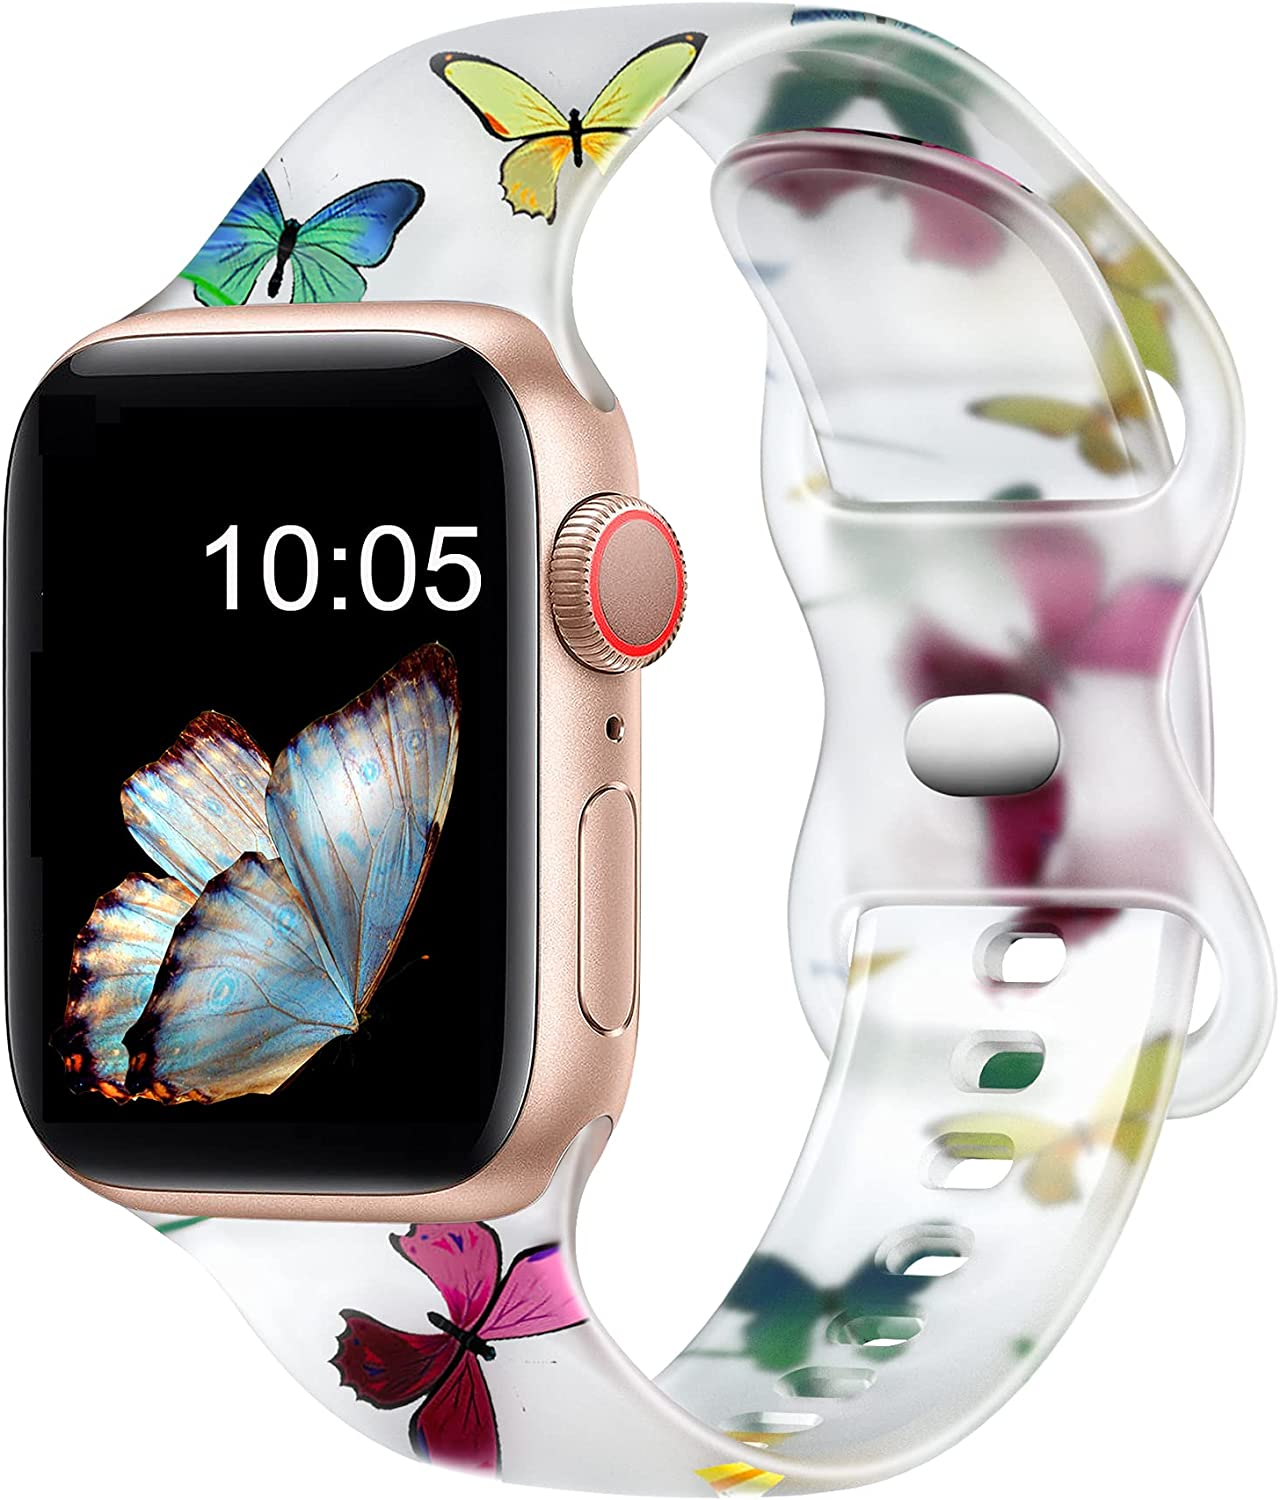 Witzon Cute Transparent Bands Compatible with Apple Watch Bands 38mm 40mm 41mm 42mm 44mm 45mm for Women Men, Soft Silicone Sport Strap Replacement Band for iWatch Series 7/6/5/4/3/2/1/SE